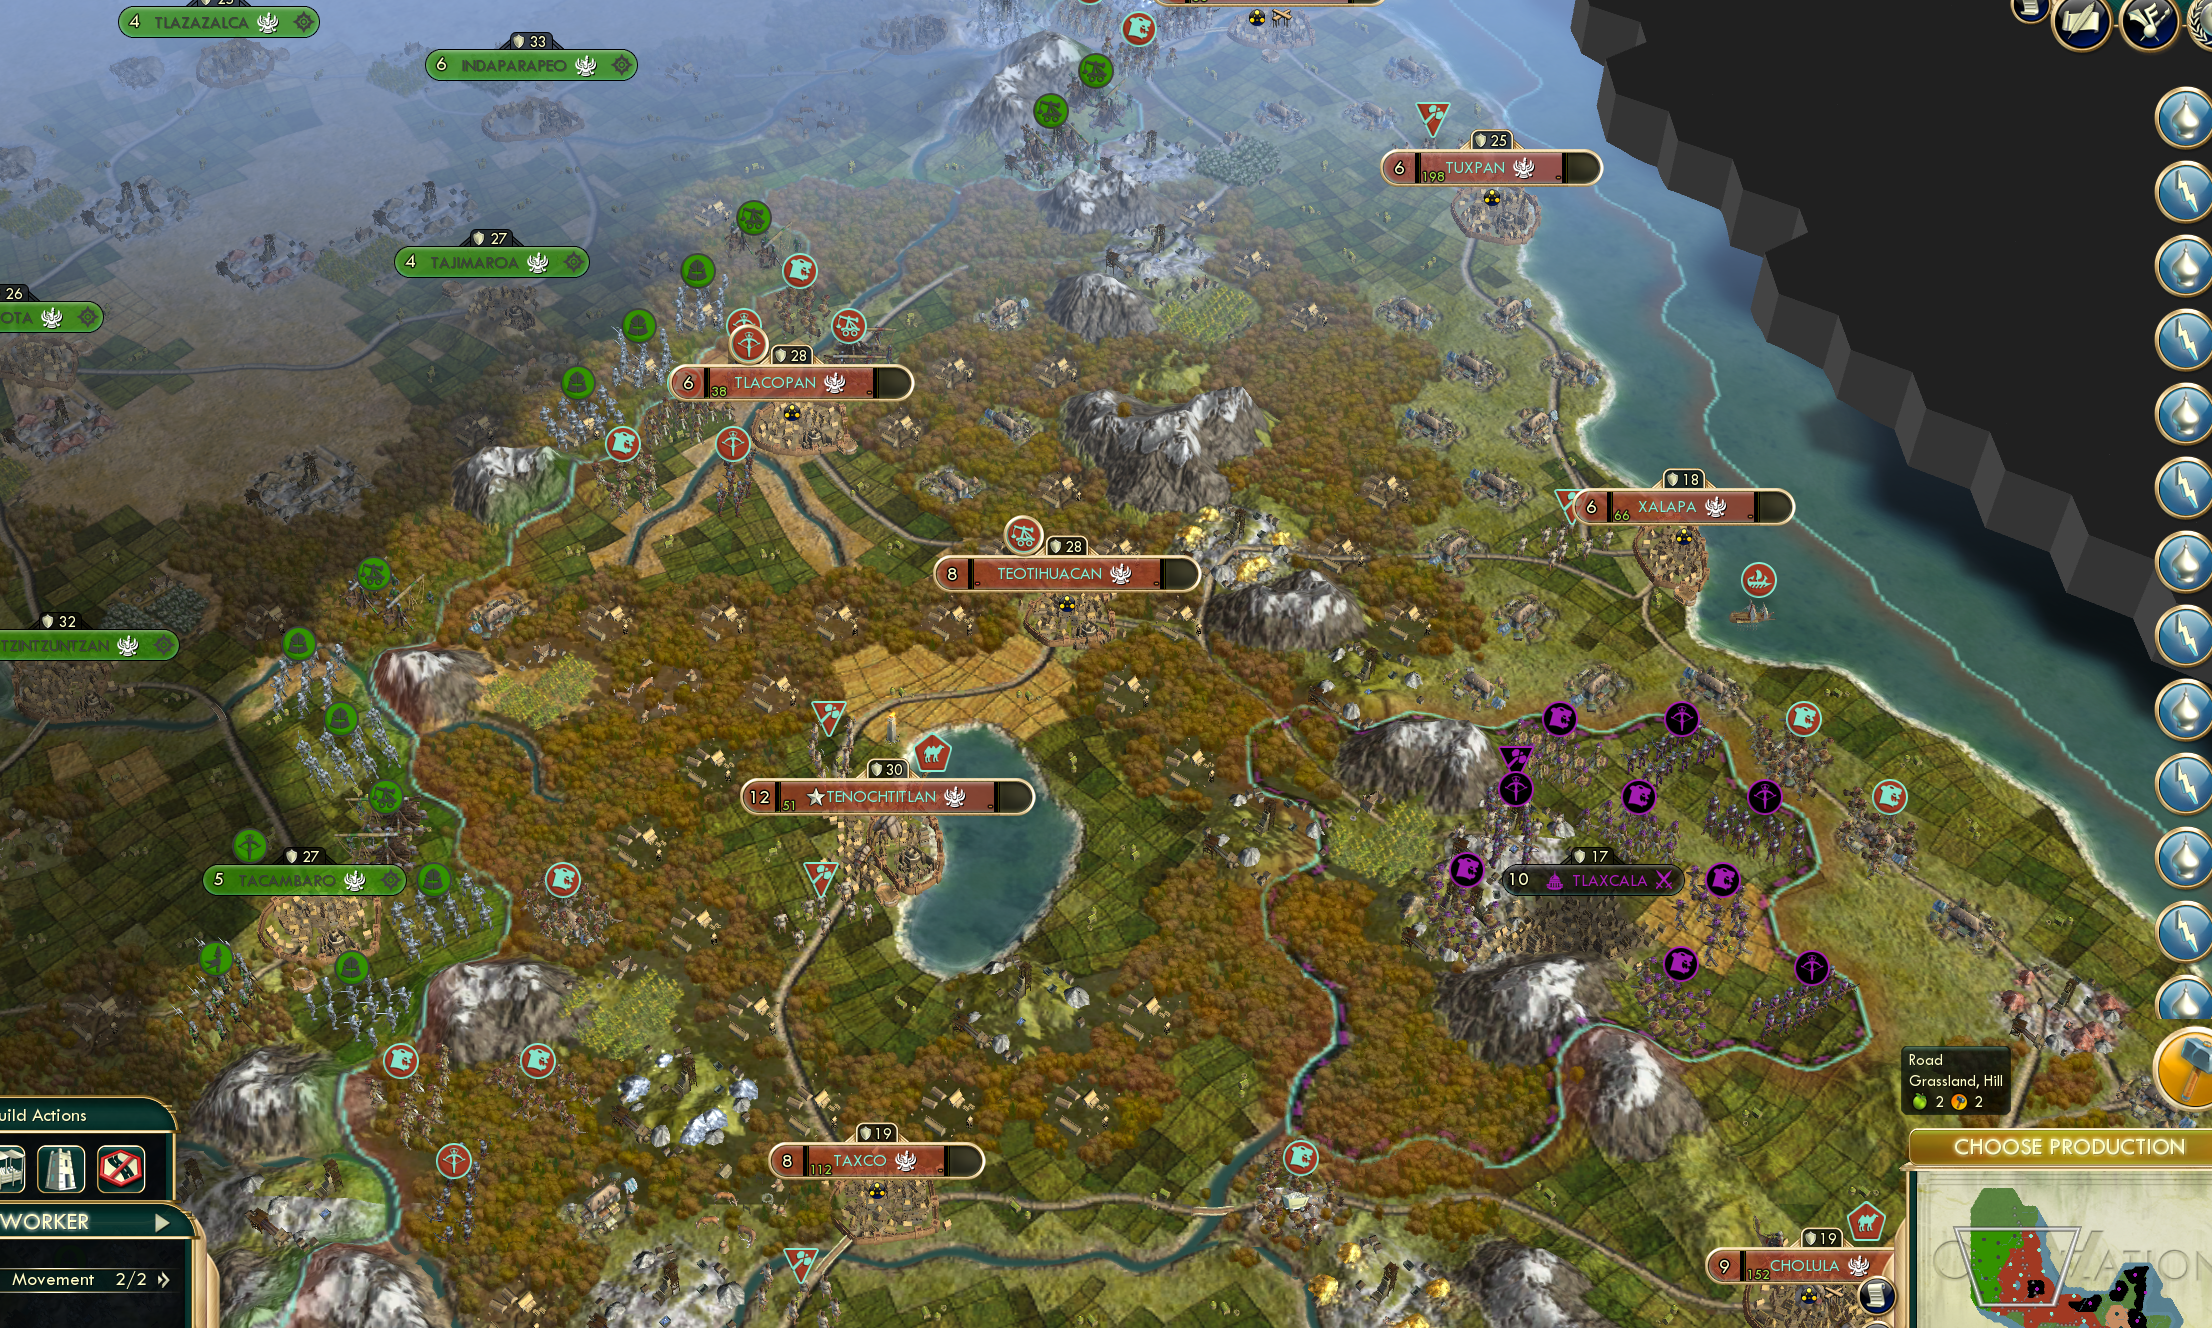 CIV 5 Mod Western World in 1492 Historical Scenario – Civ 5 World Map